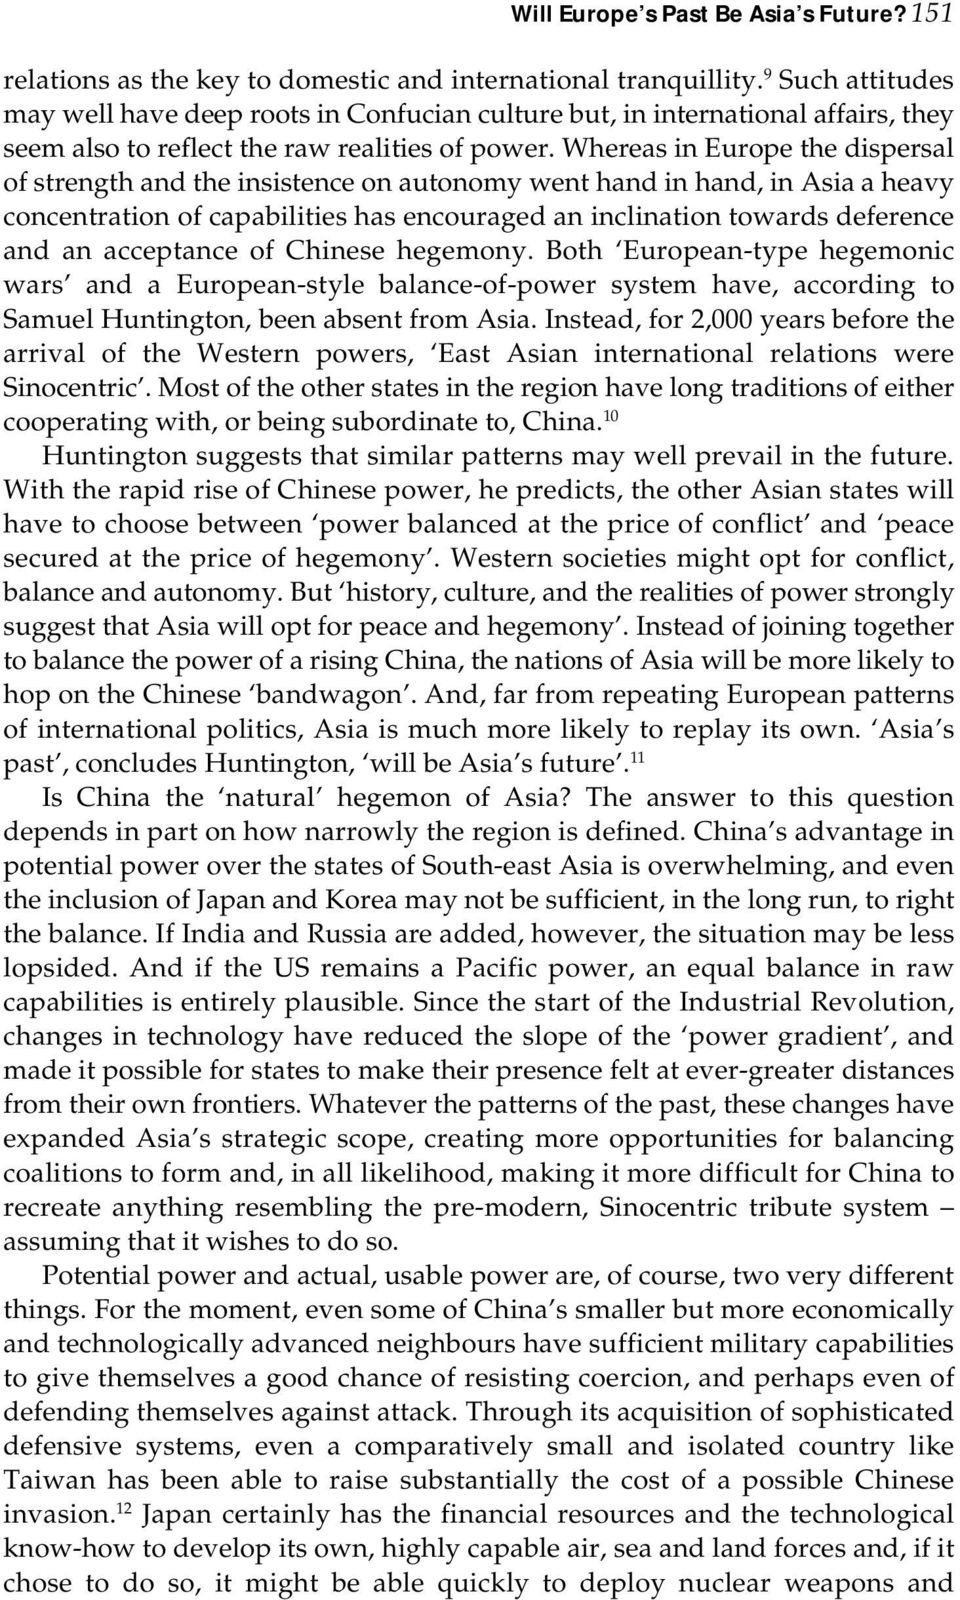 Whereas in Europe the dispersal of strength and the insistence on autonomy went hand in hand, in Asia a heavy concentration of capabilities has encouraged an inclination towards deference and an